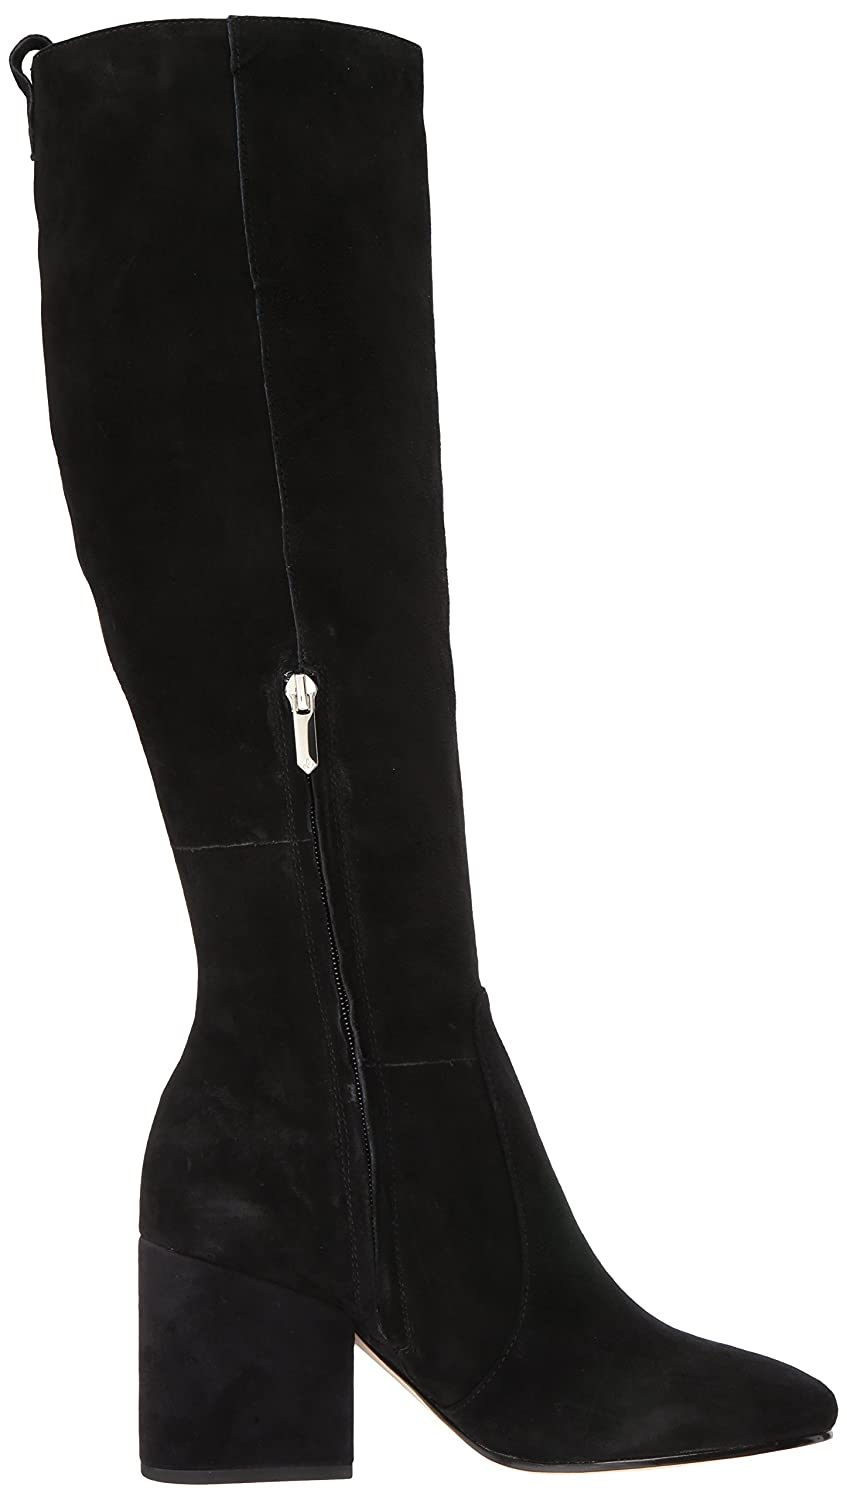 629bc8564 Sam Edelman Women s Thora Knee High Boot  Amazon.co.uk  Shoes   Bags